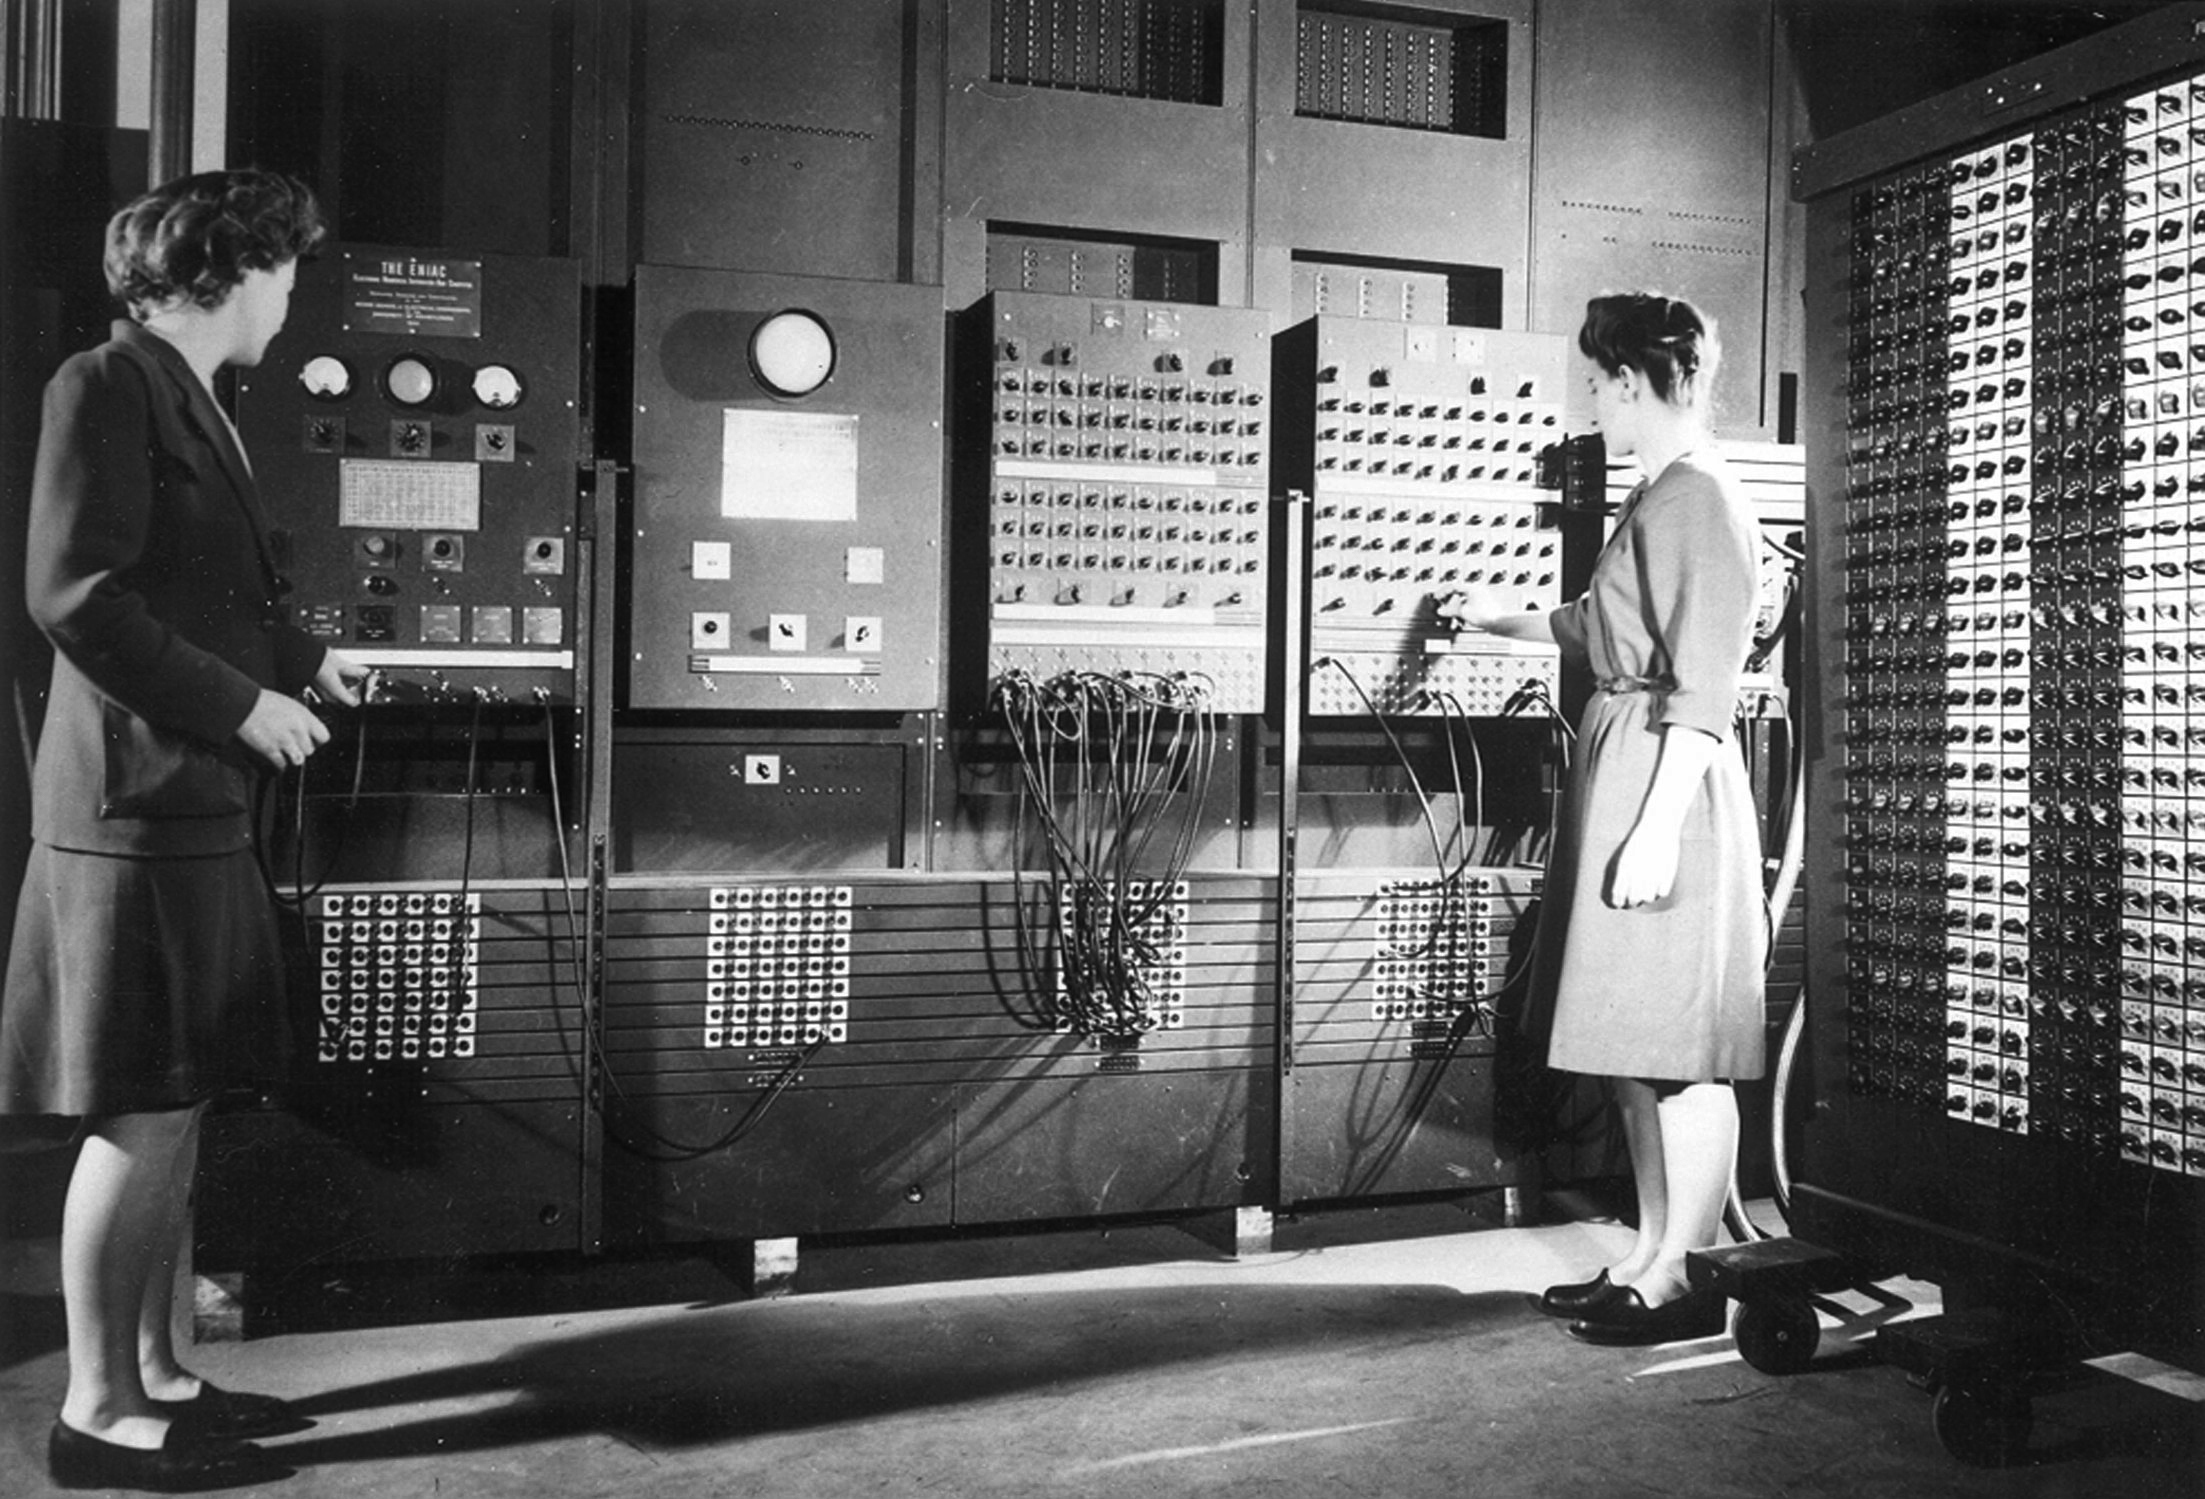 Who created the first working computer